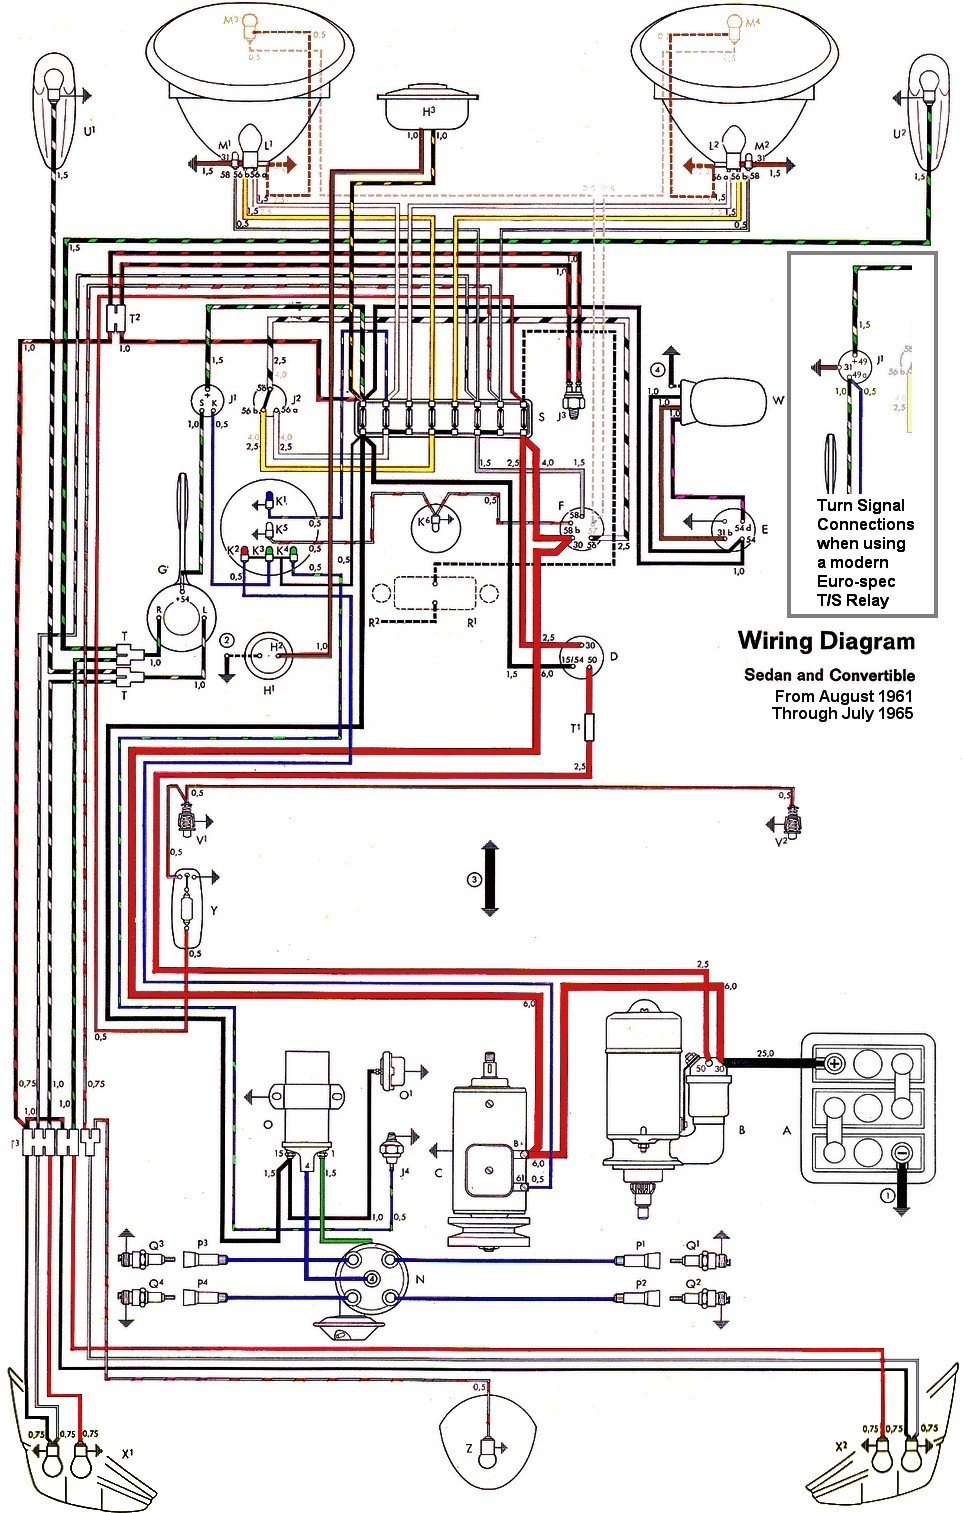 bug_62 65withinset vw wiring harness diagram cj7 wiring harness diagram \u2022 wiring Wiring Harness Diagram at gsmportal.co